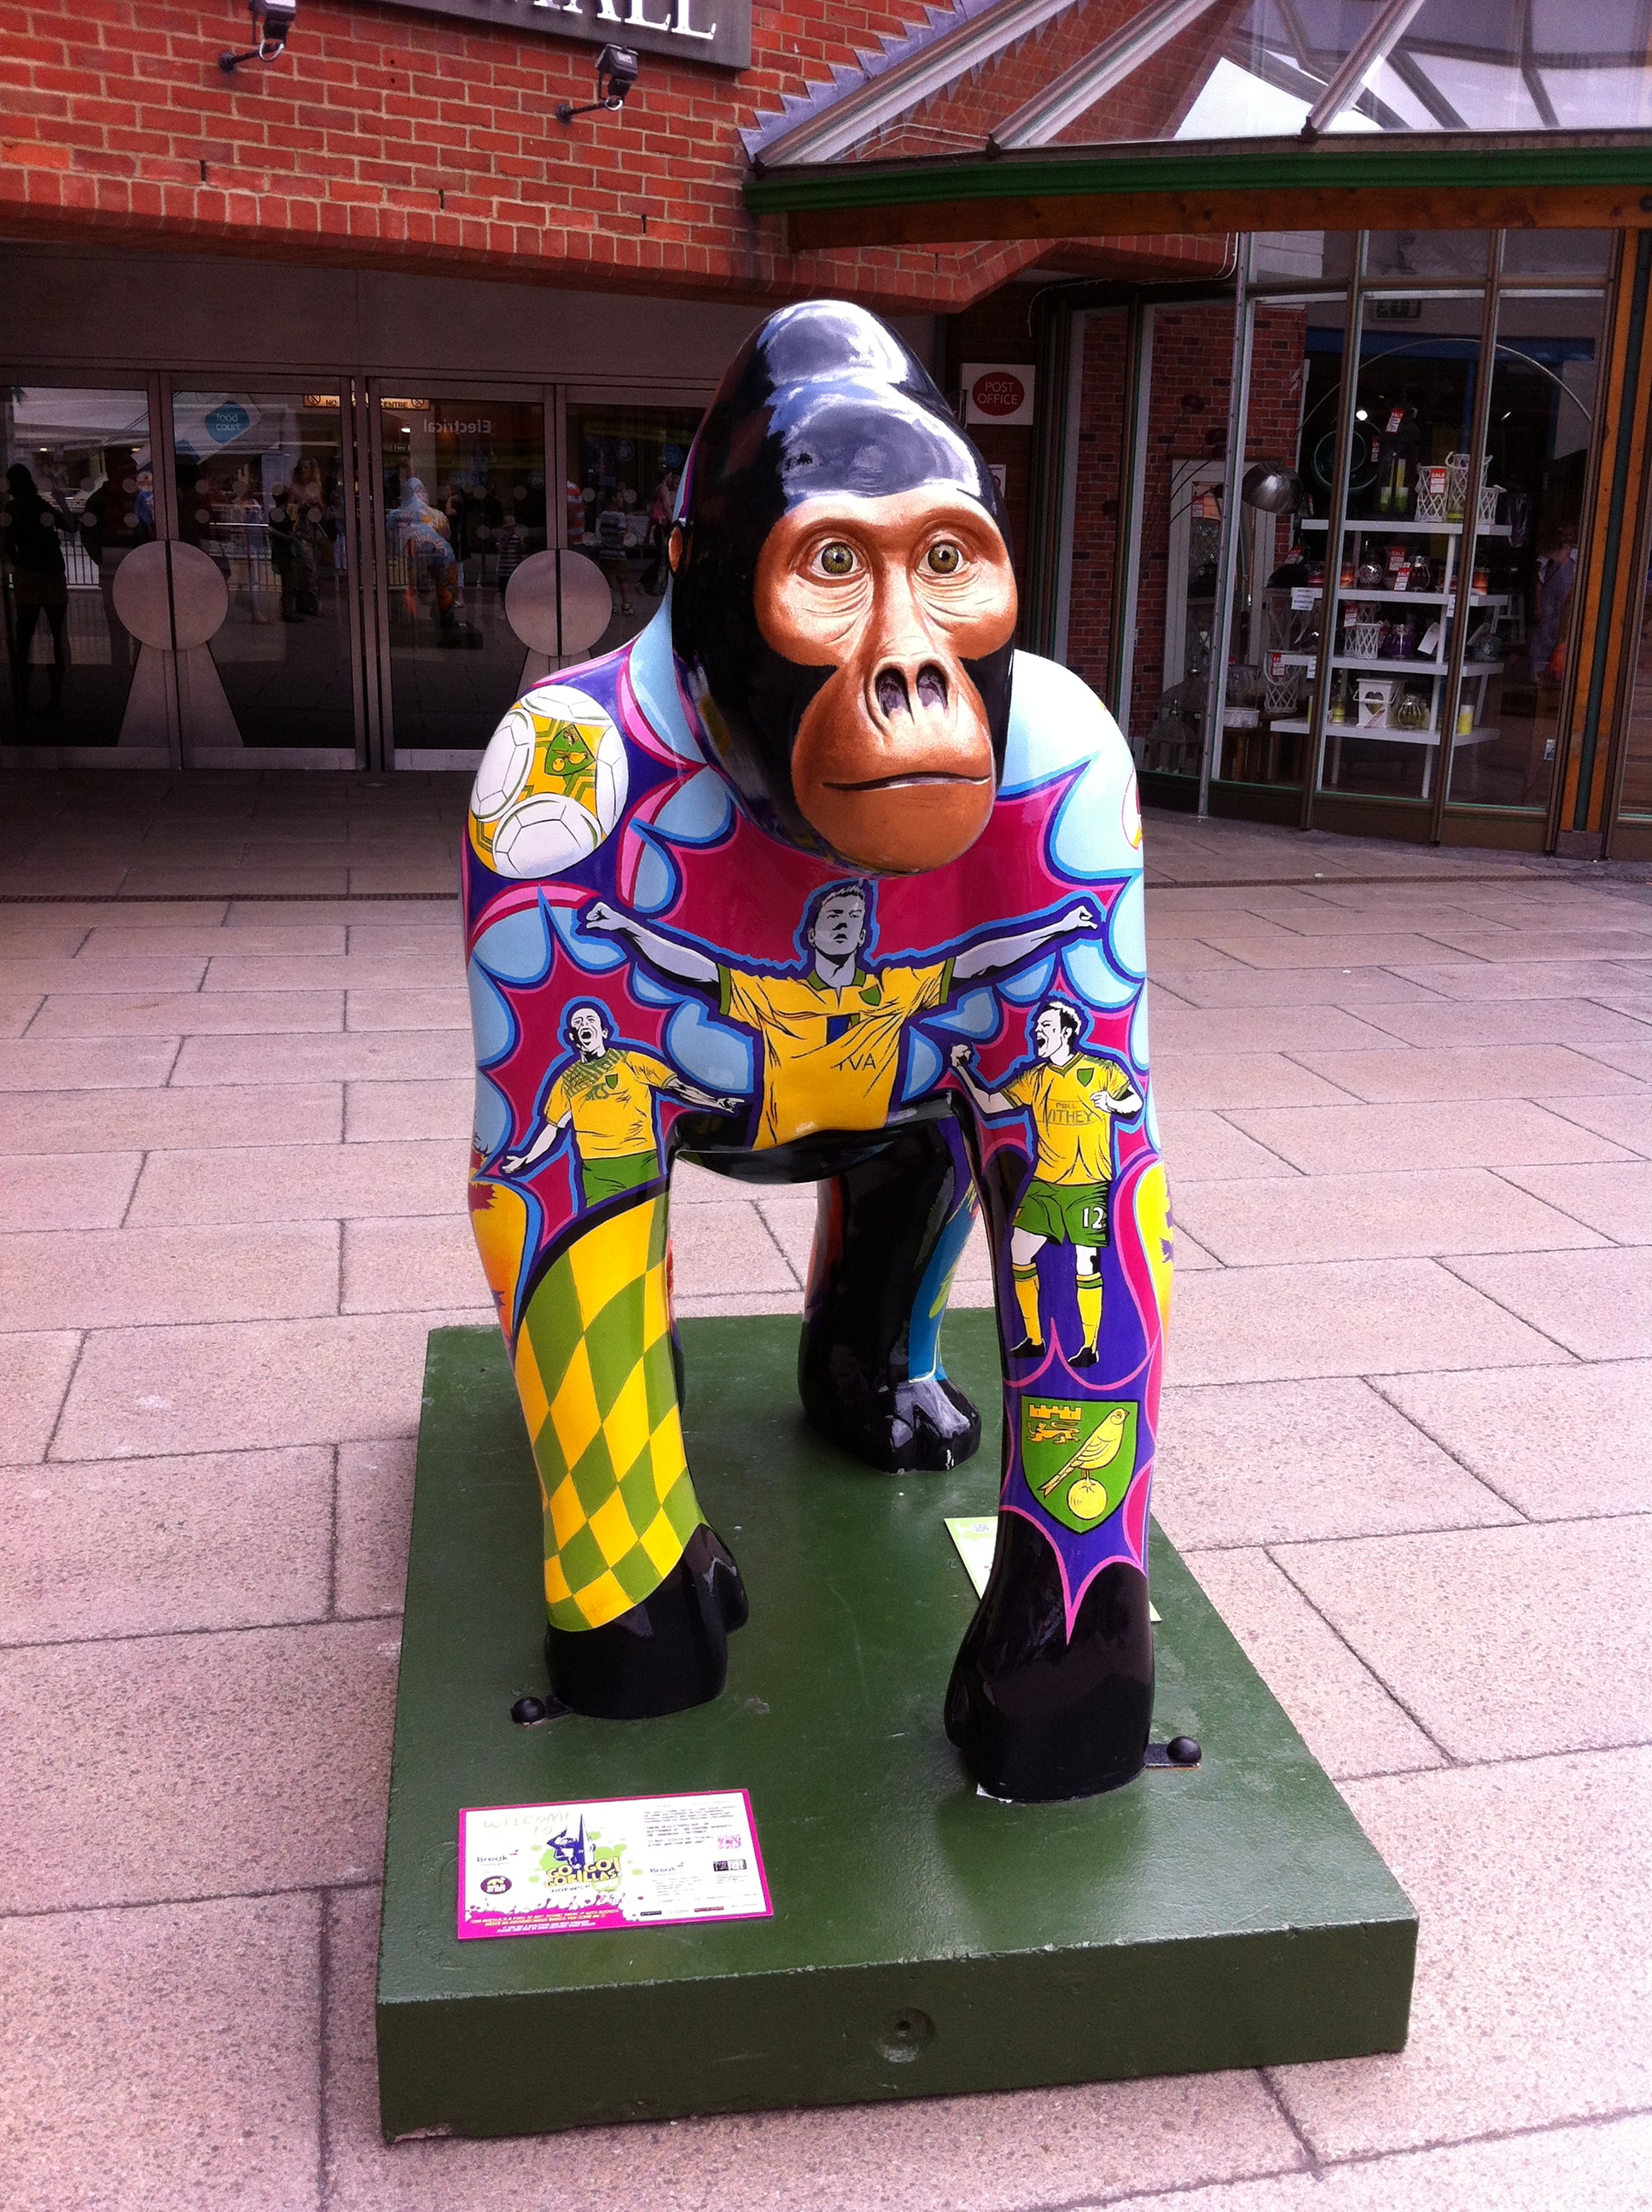 Go Go Gorilla Ivan, the Iconic Norwich Gorilla